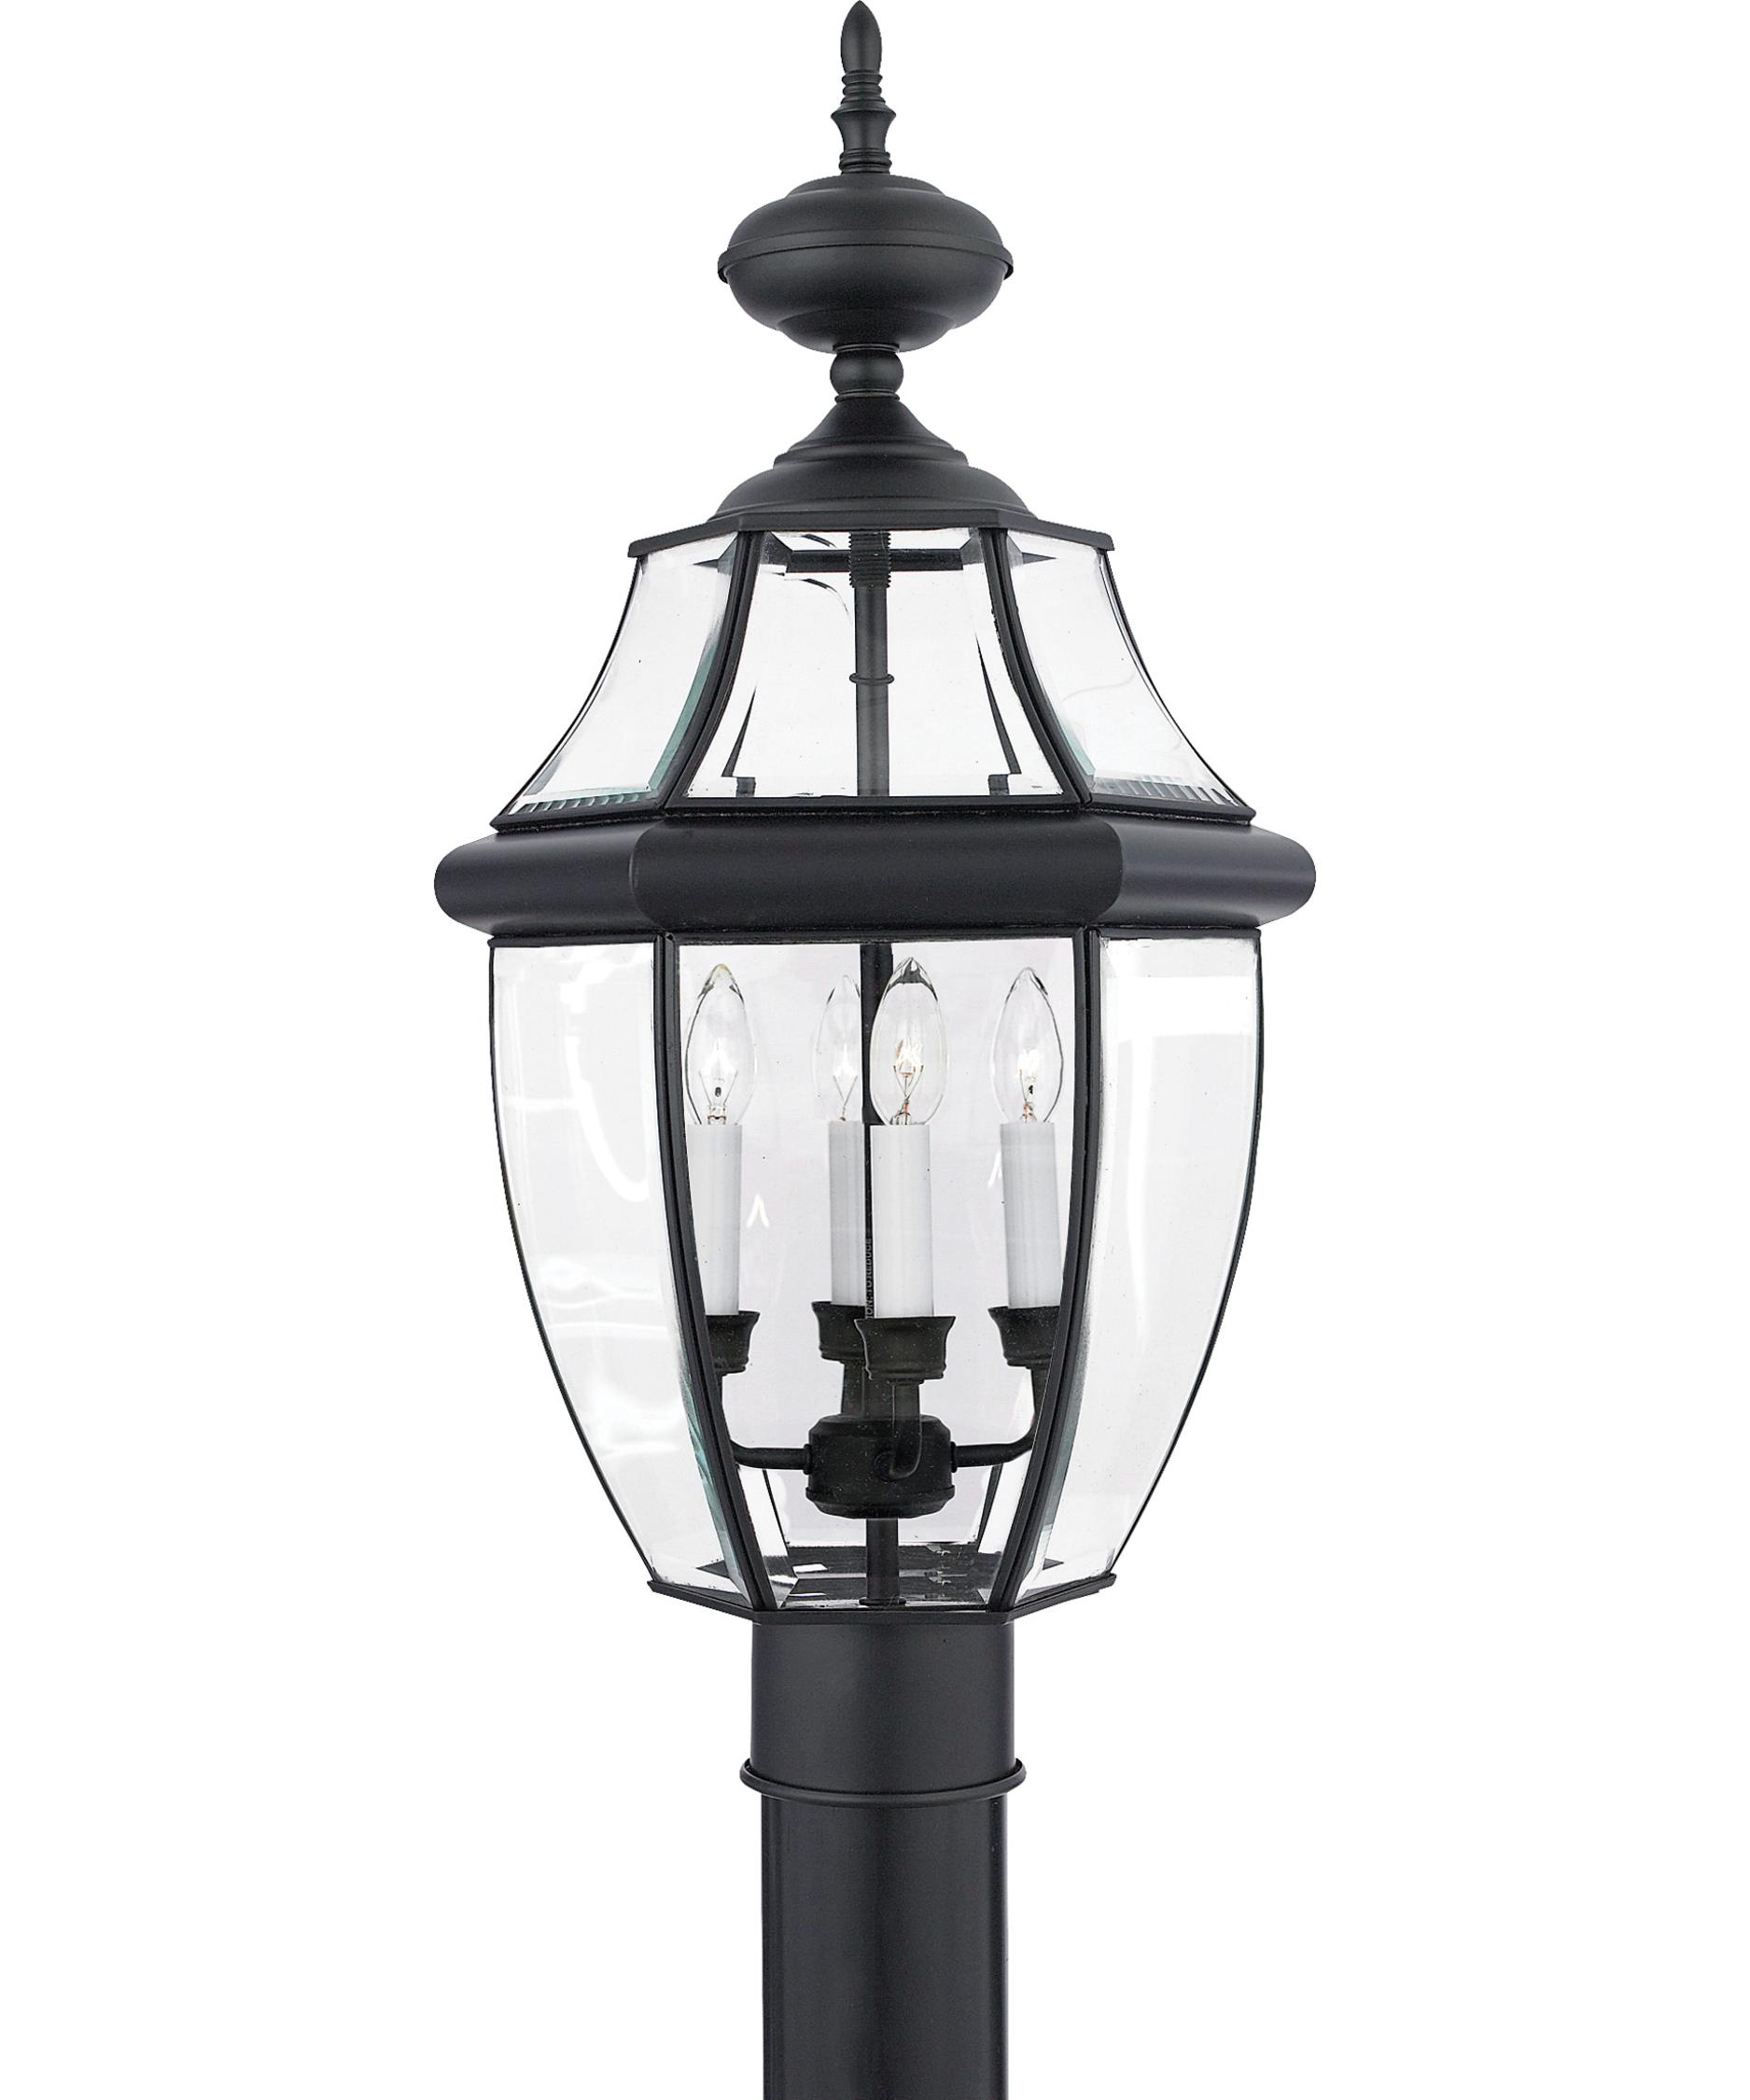 4 light outdoor post lamp photo - 3